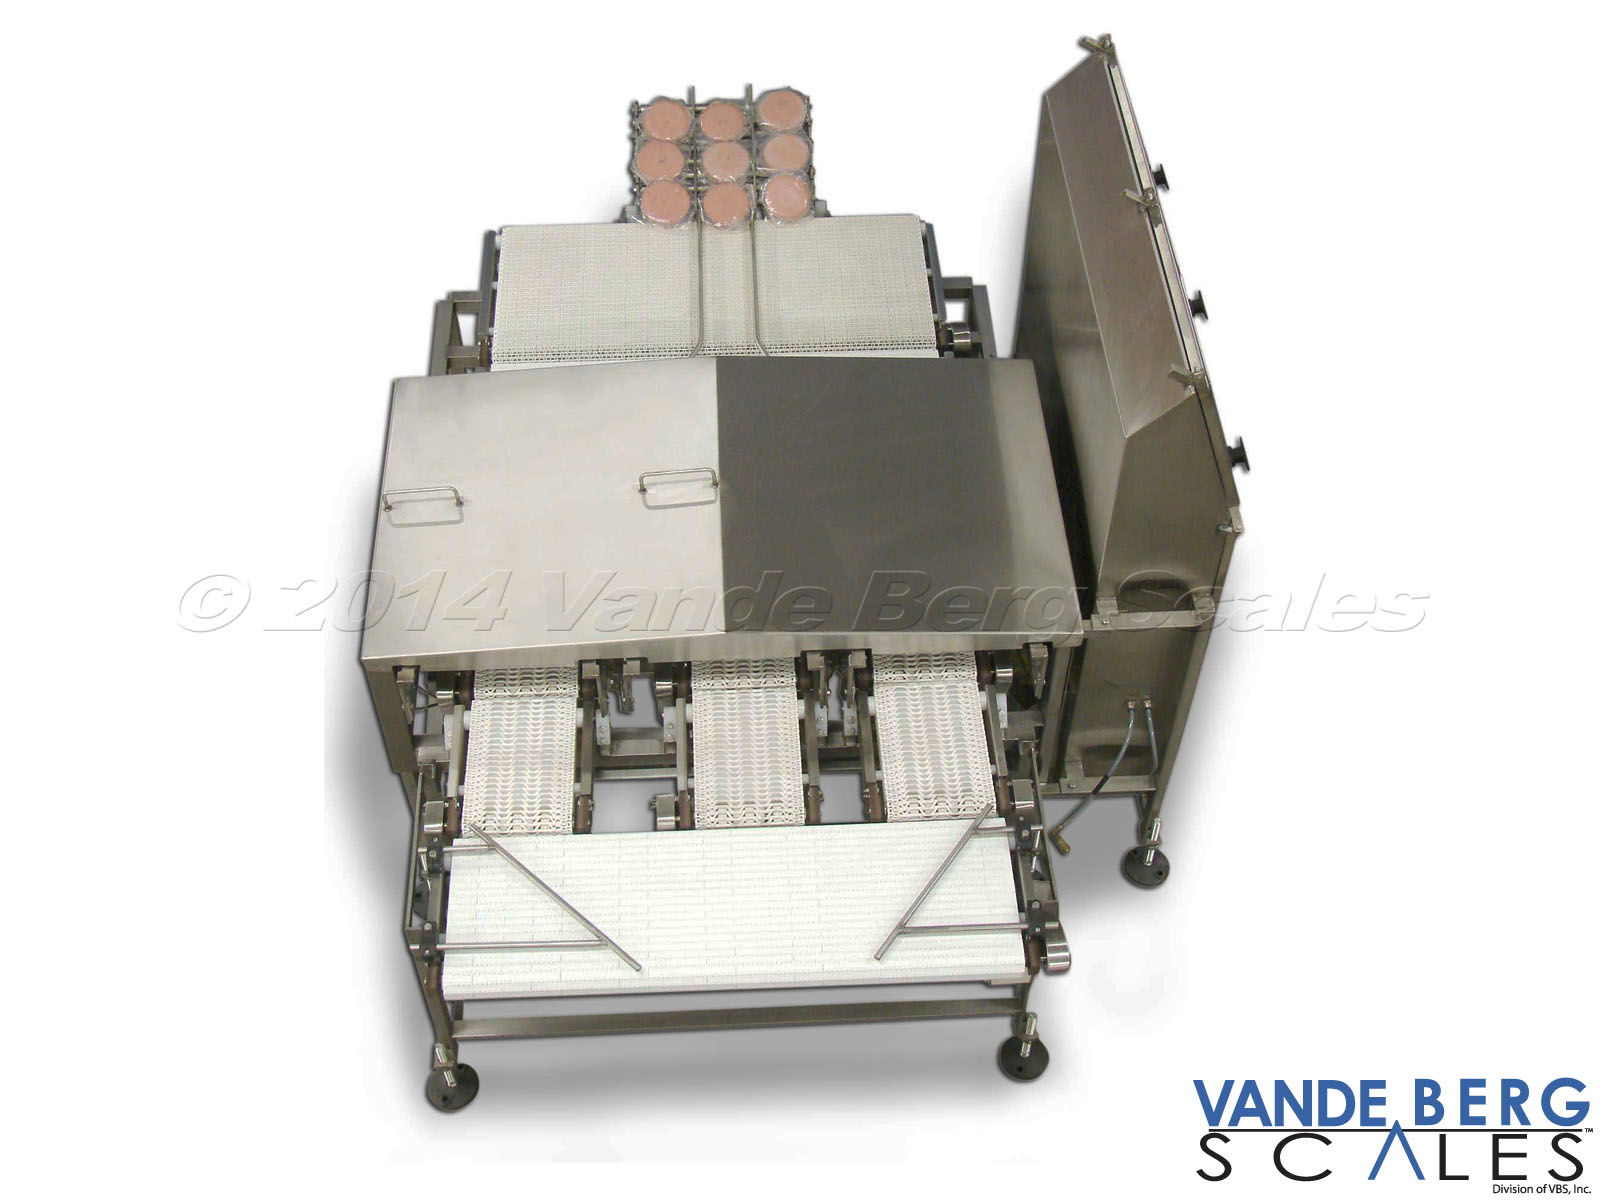 Top-down view of a 3-lane beef patty checkweigher with stainless steel draft shield.